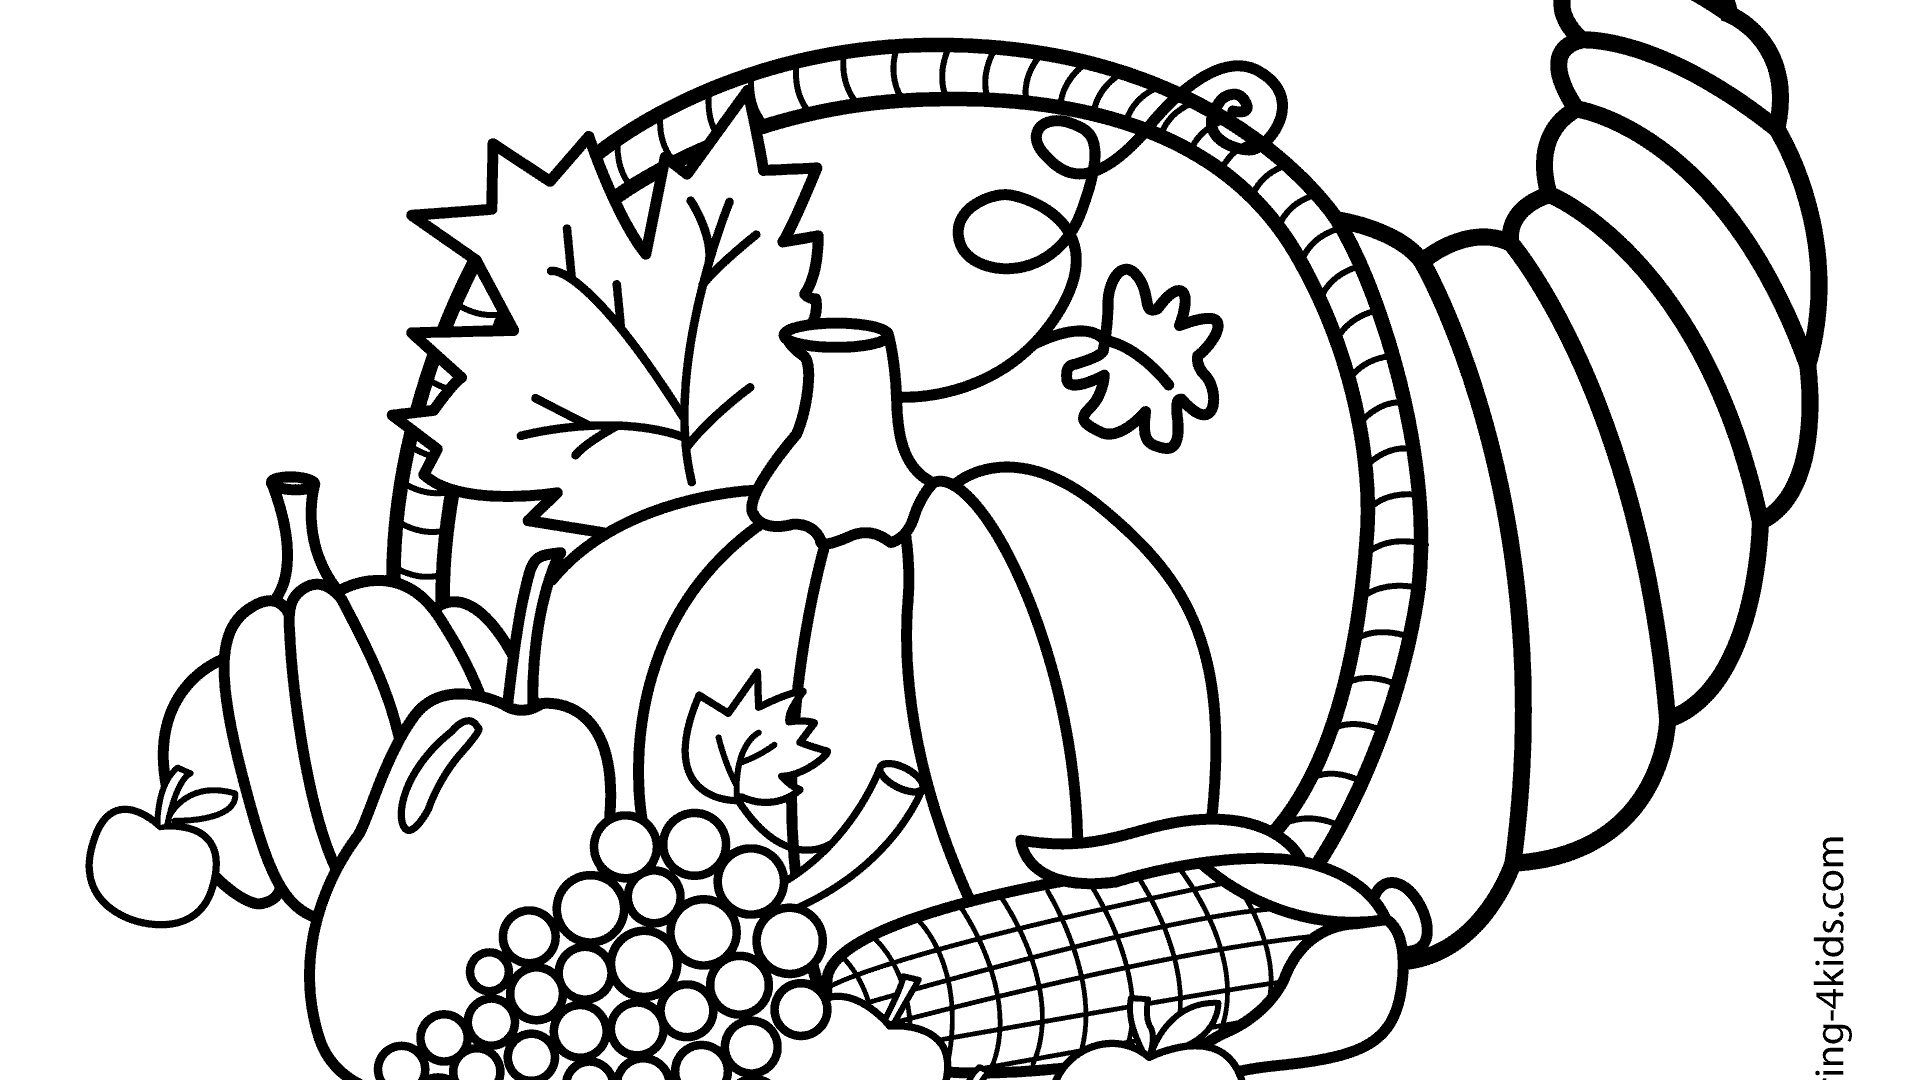 Easy Turkey Coloring Page at GetDrawings.com | Free for ...